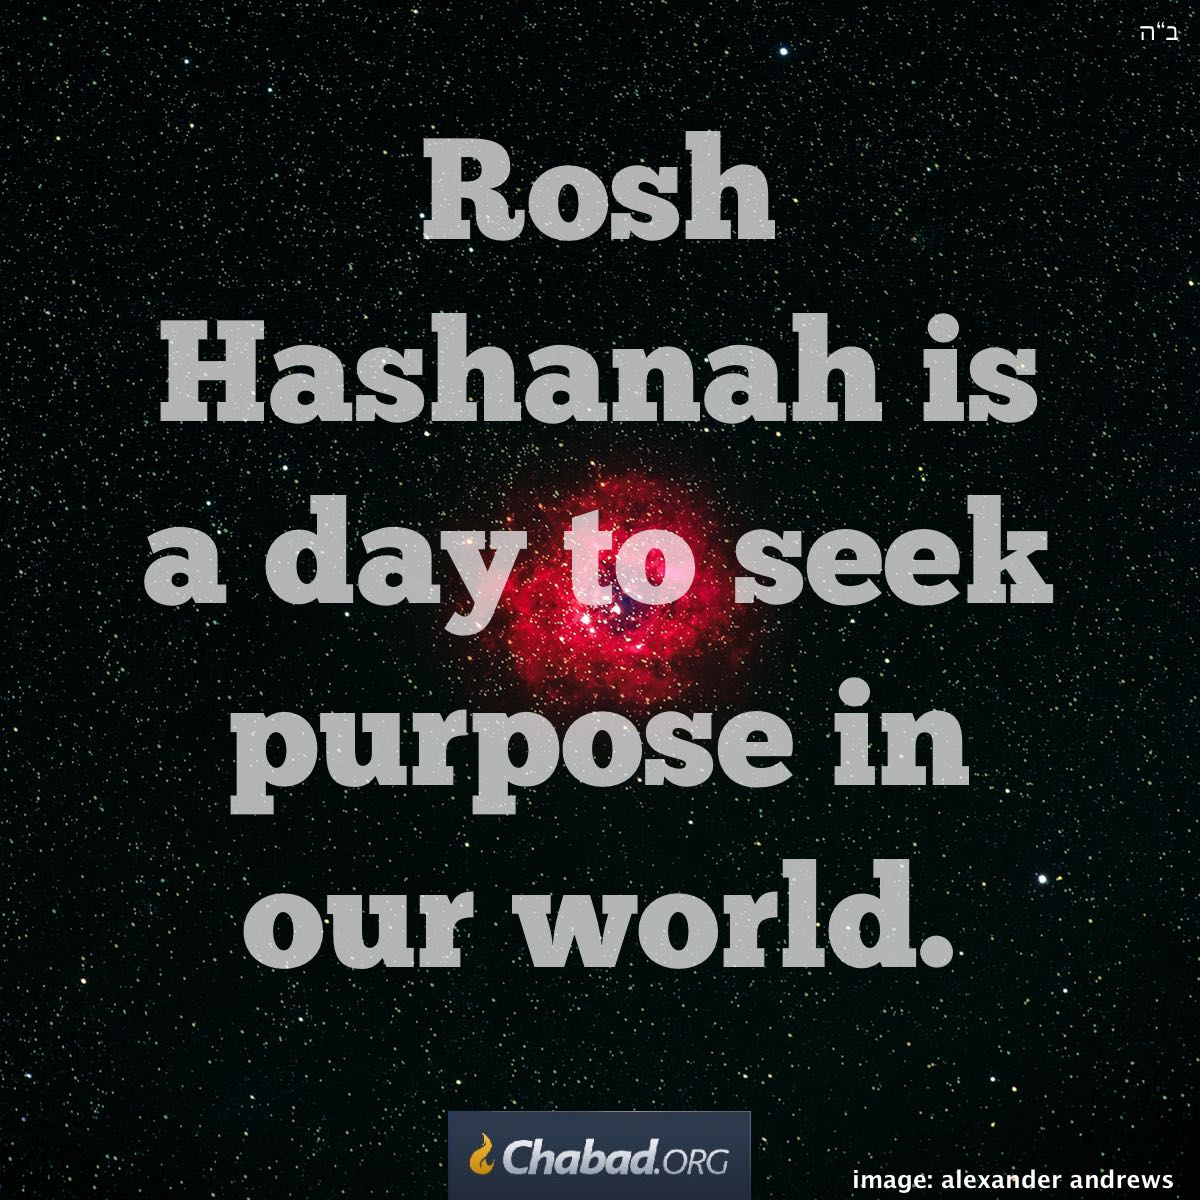 18 Empowering Contemplations For Rosh Hashanah